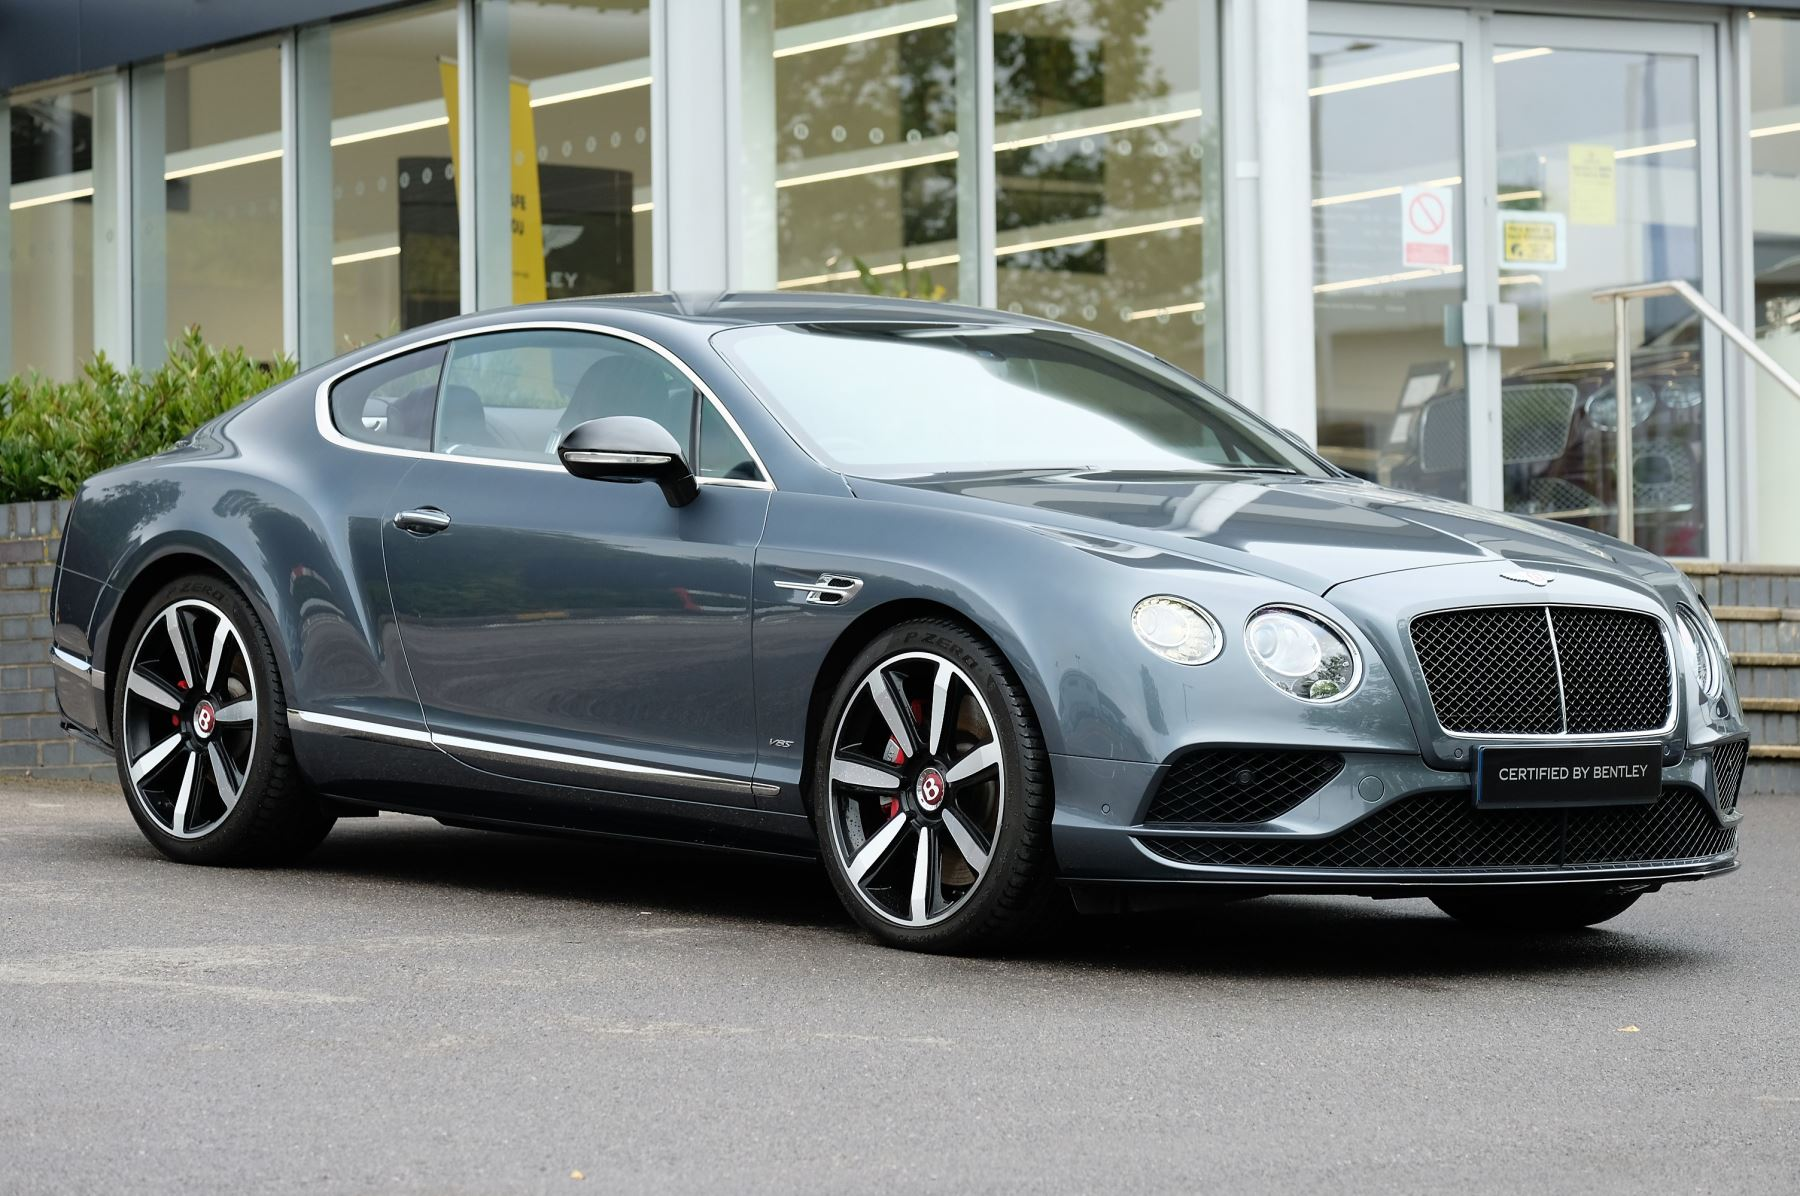 Bentley Continental GT 4.0 V8 S Mulliner Driving Spec 2dr image 1